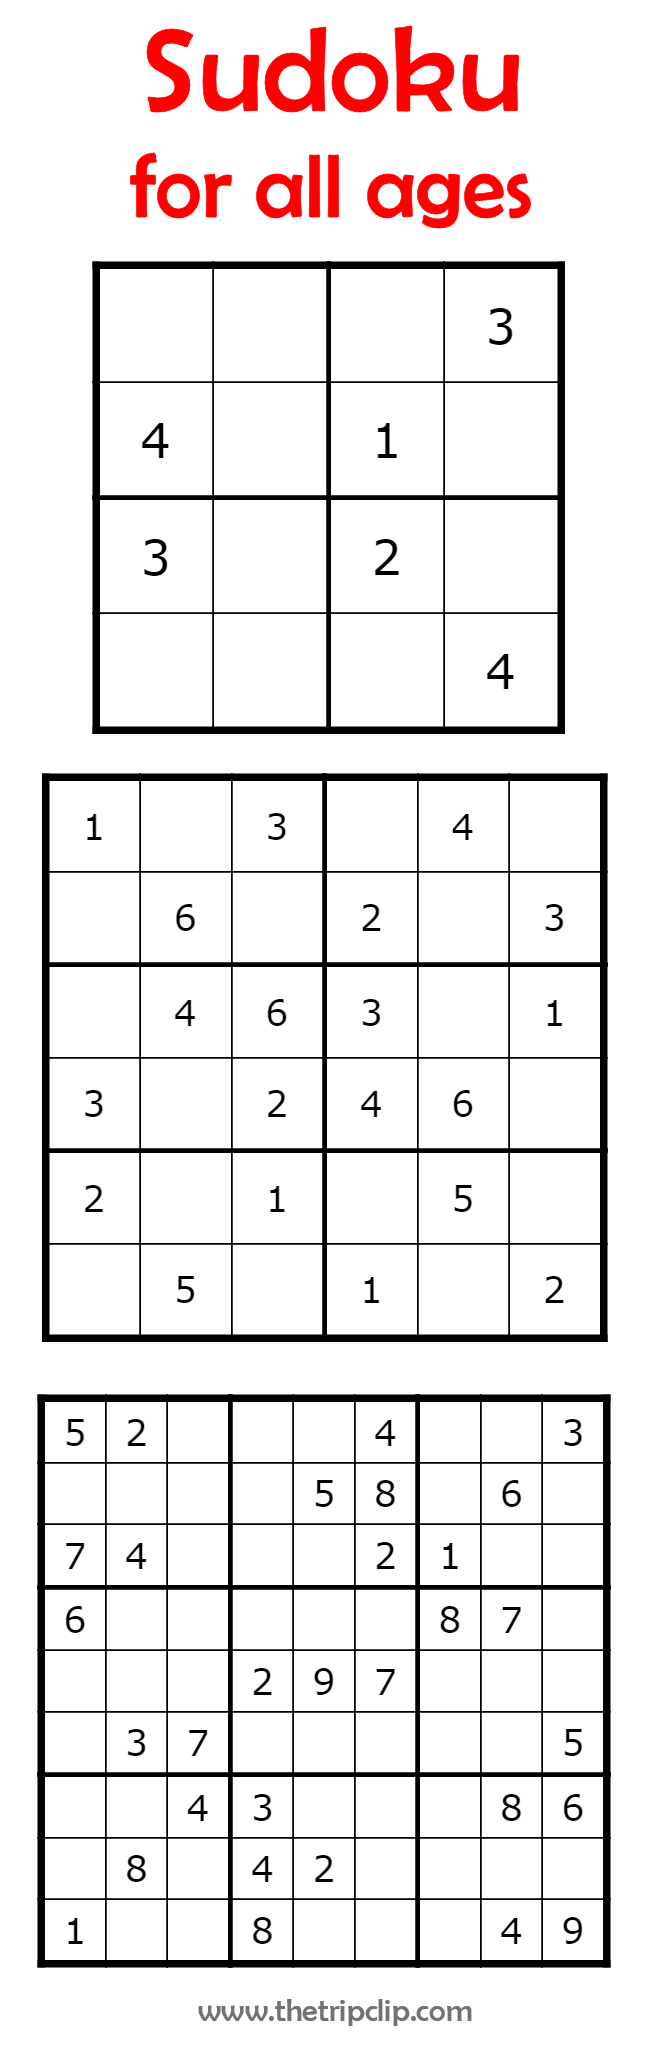 Sudoku For All Ages Plus Lots Of Other Printable Activities For Kids - Sudoku Puzzles Printable 6X6